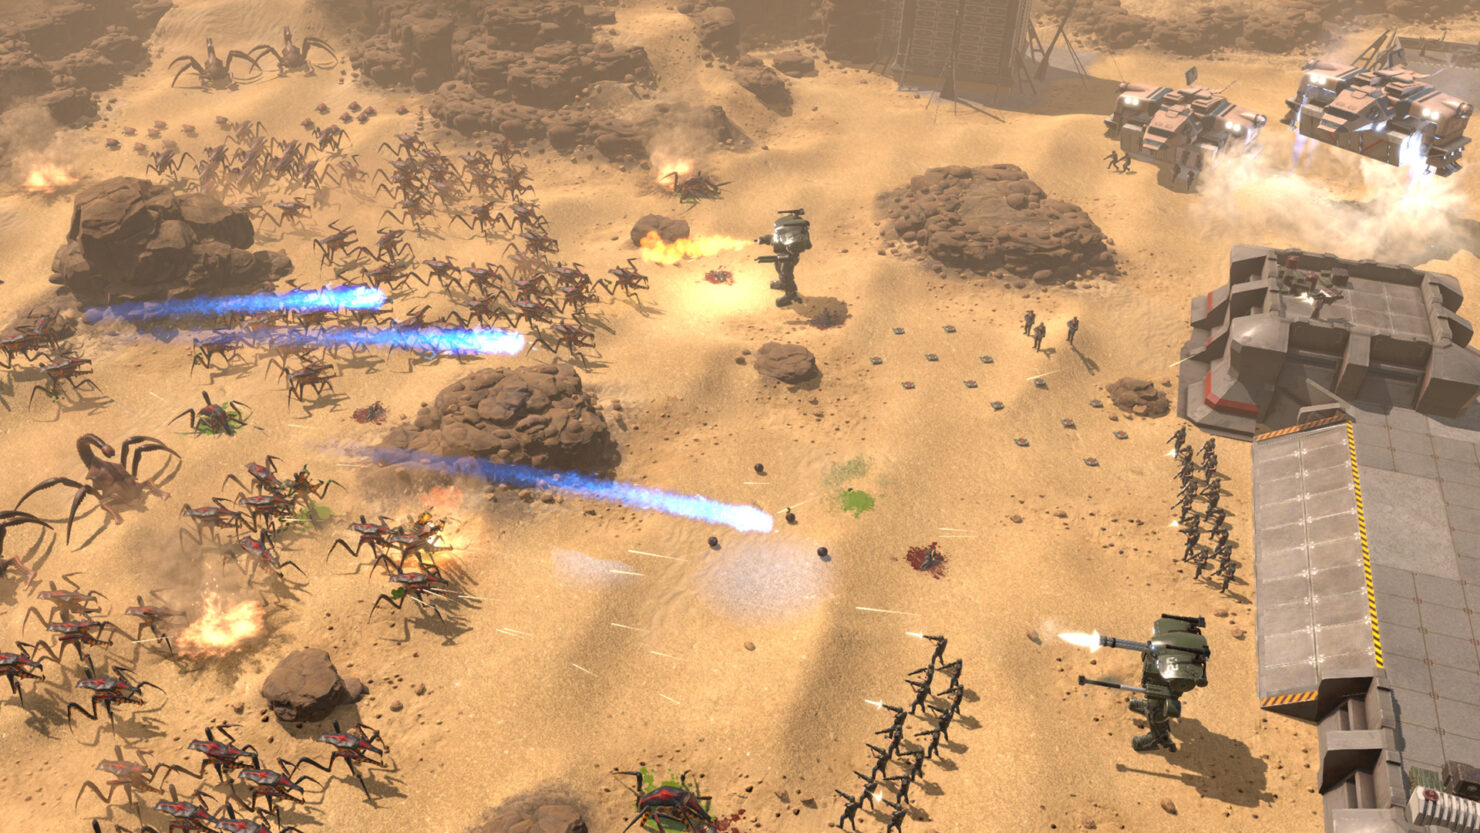 starship-troopers-terran-command-coming-soon-03-part-2-defensive-lines